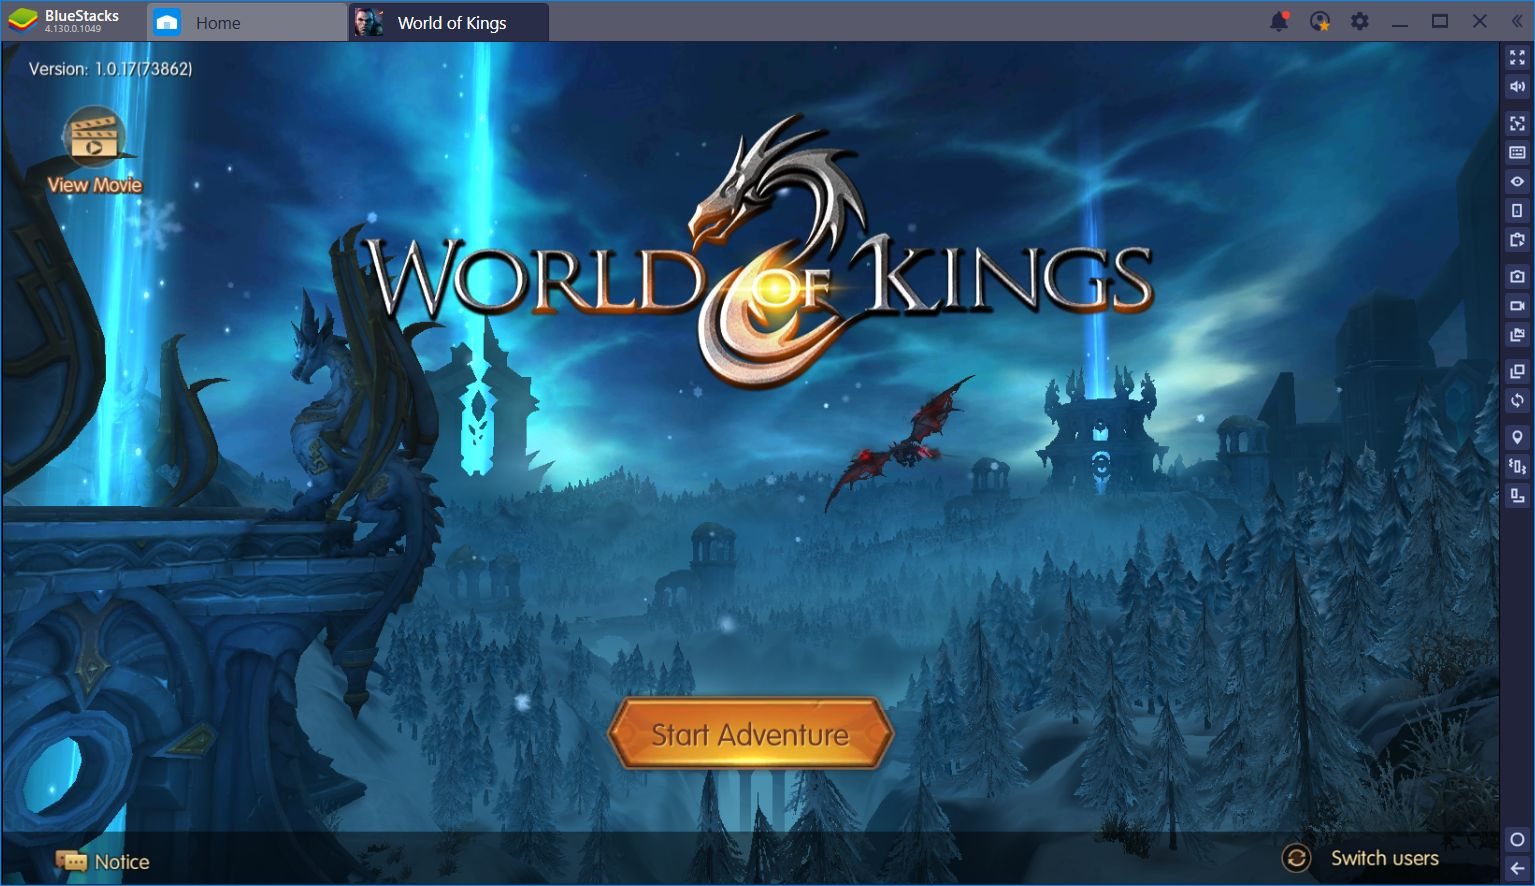 World of Kings: Everything New in Patch 2.0